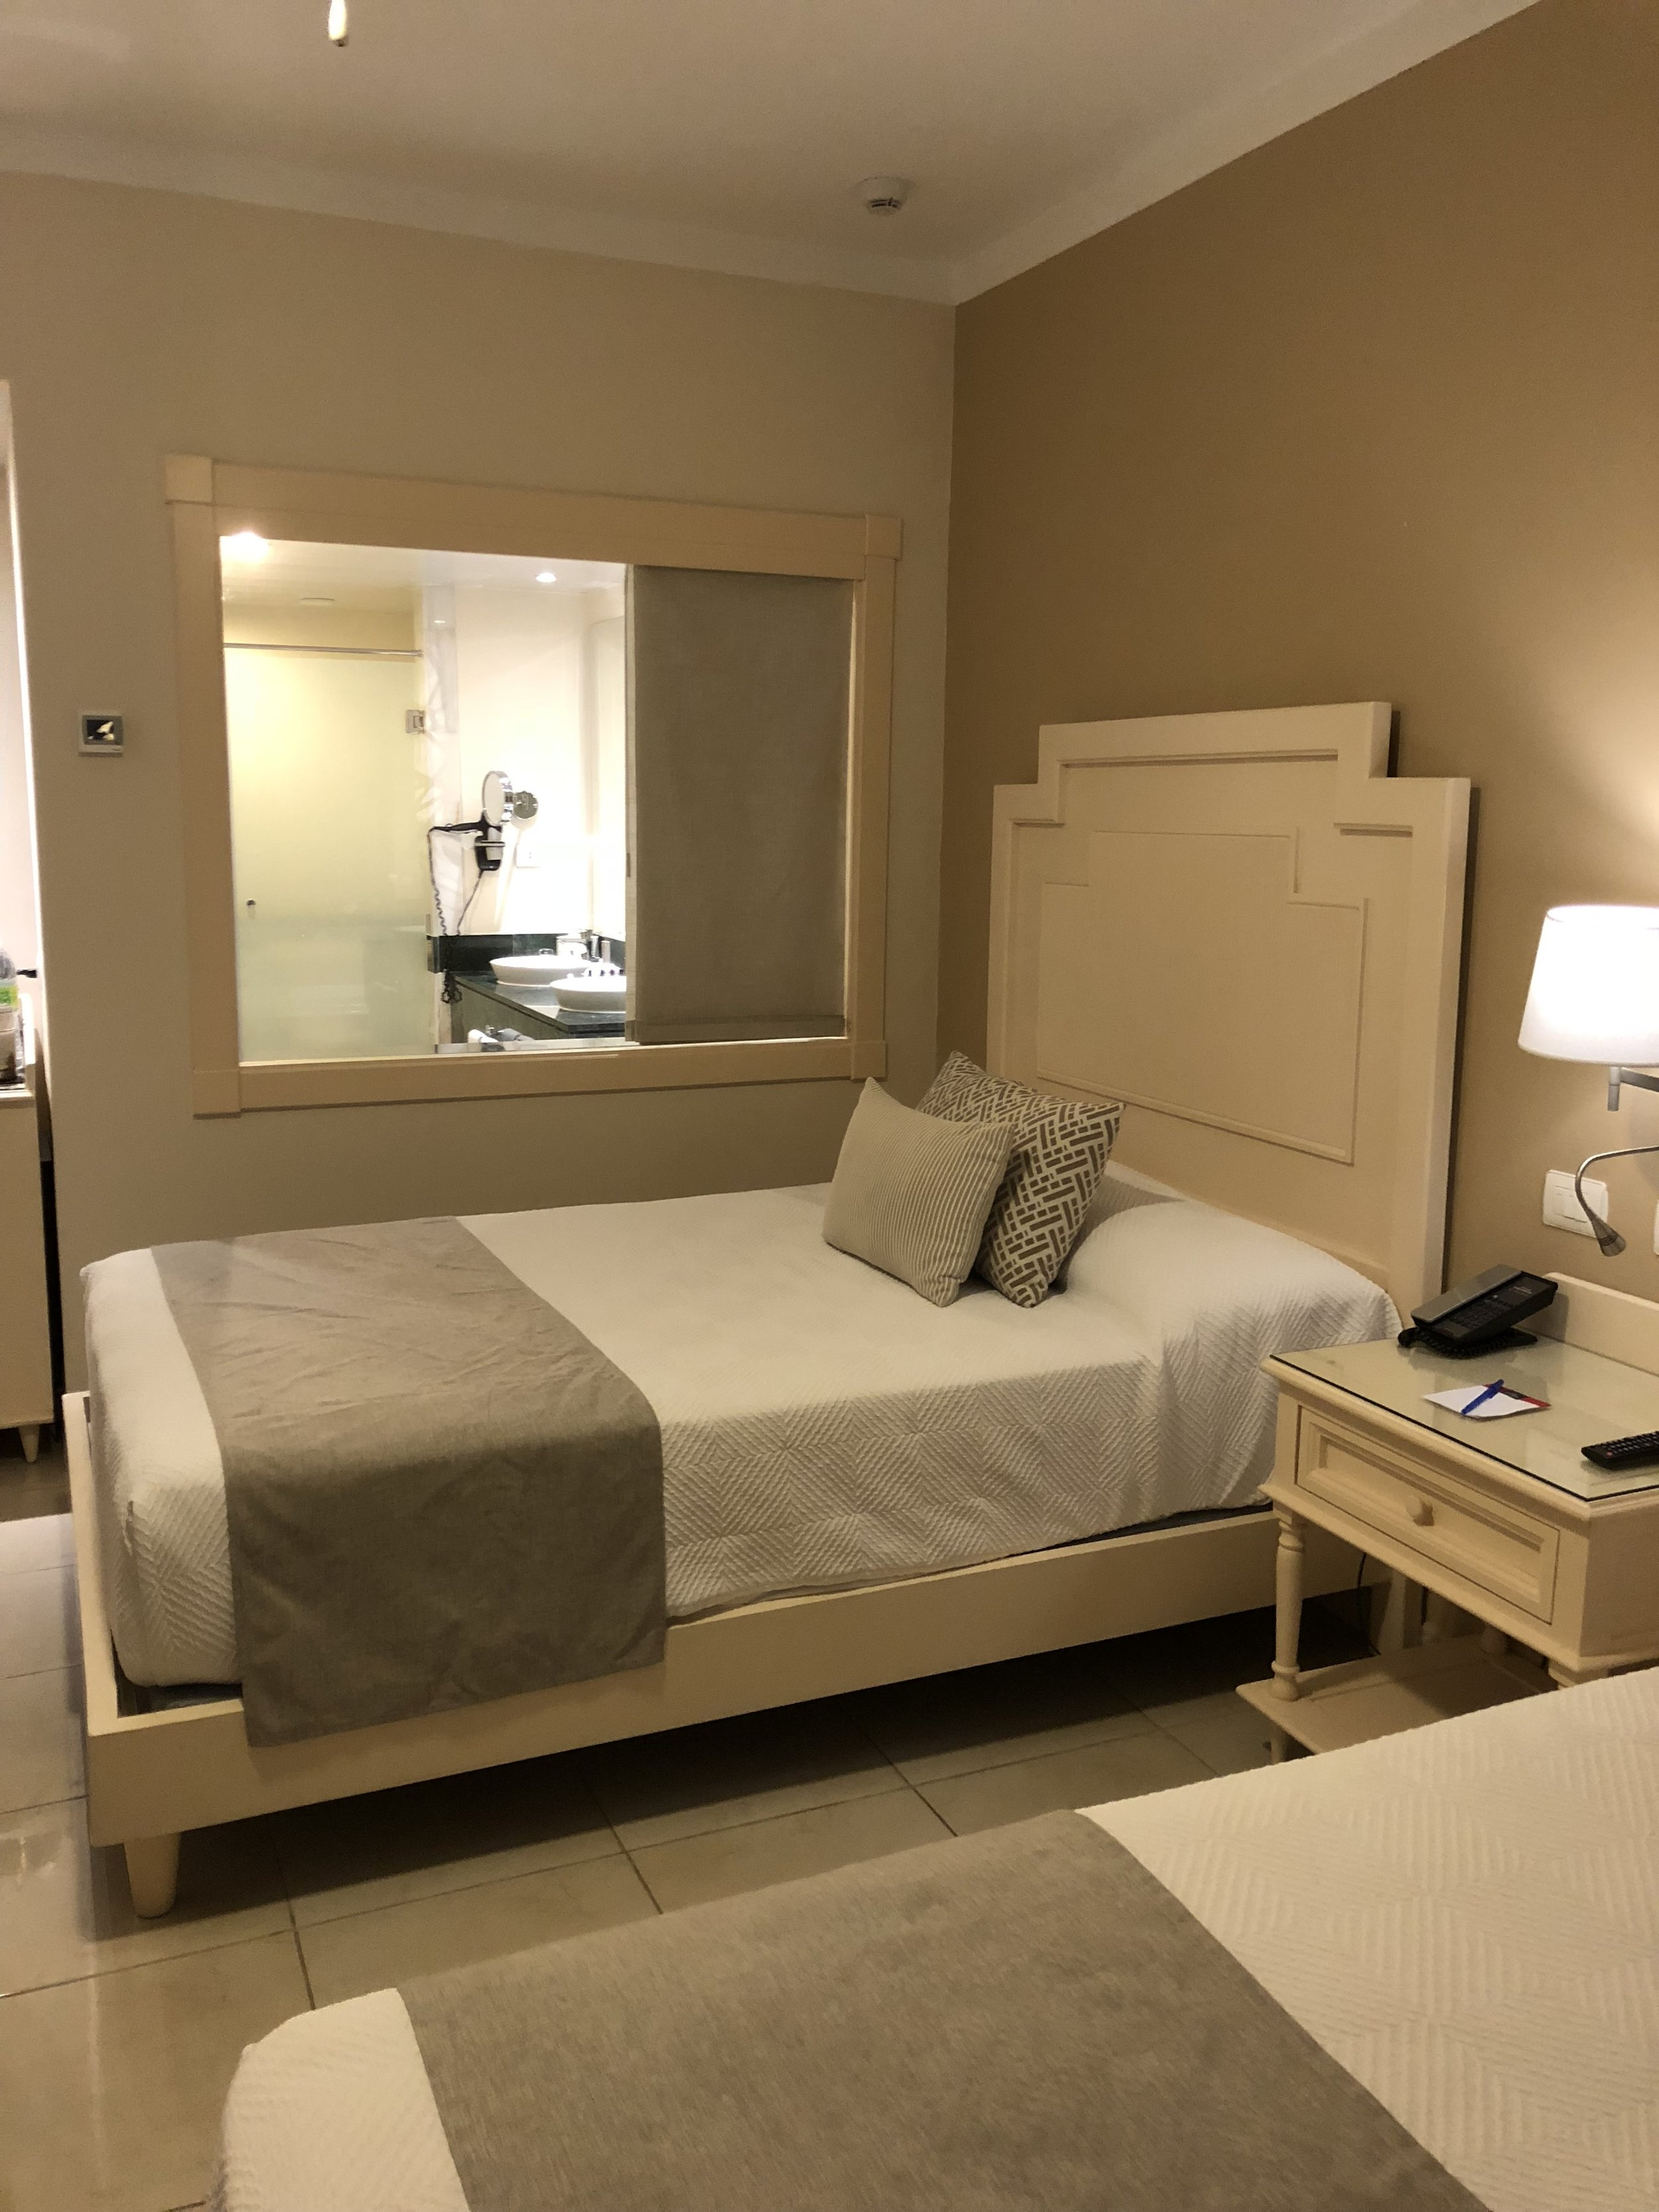 View of the bathroom within the junior suite deluxe.